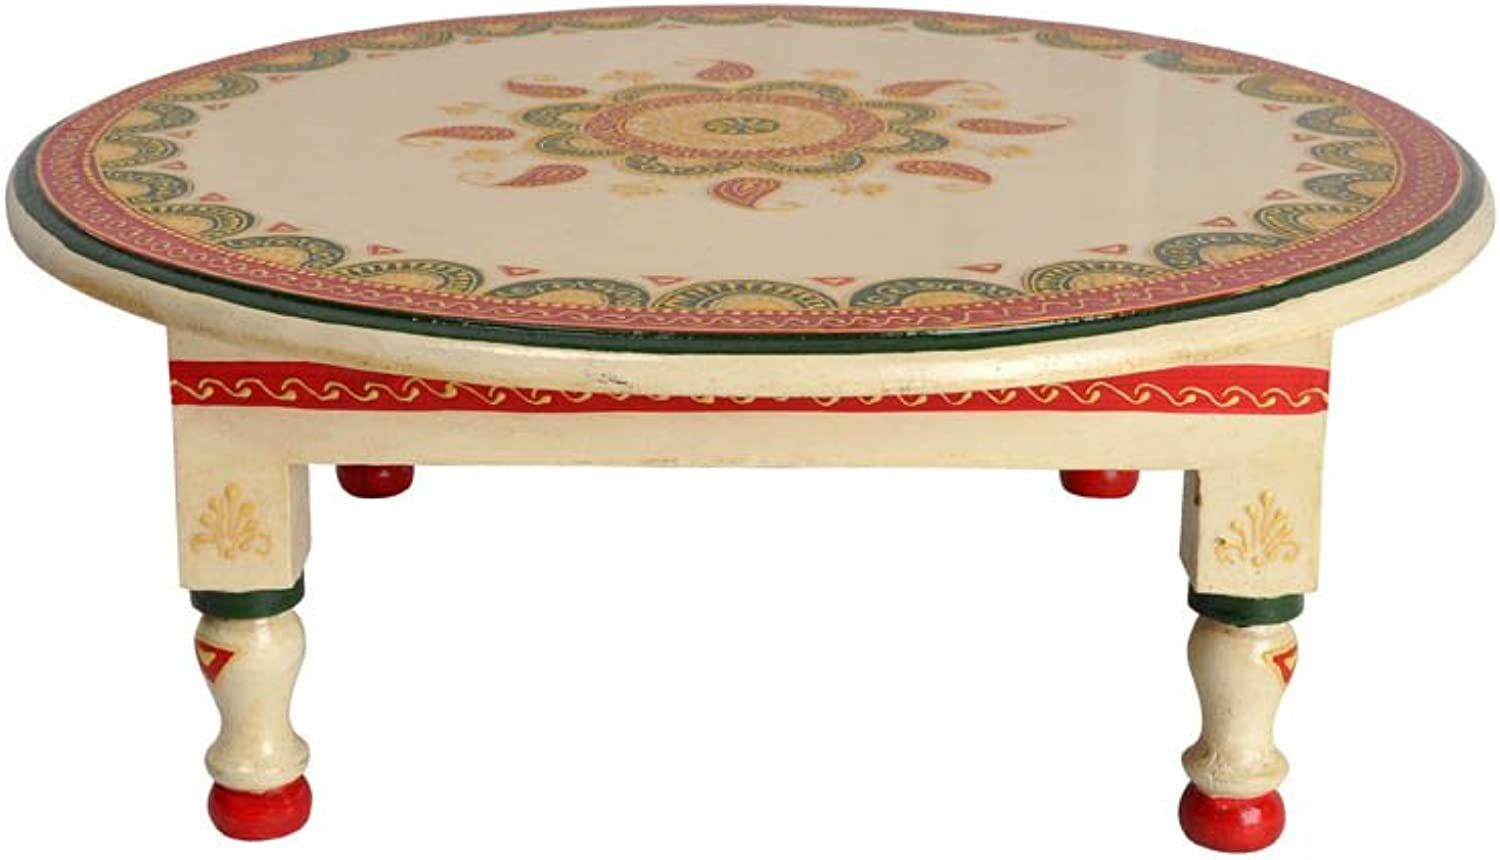 Lalhaveli White Decorative Hand Painted Round Wooden Small Side Table 16 x 16 x 6 Inch